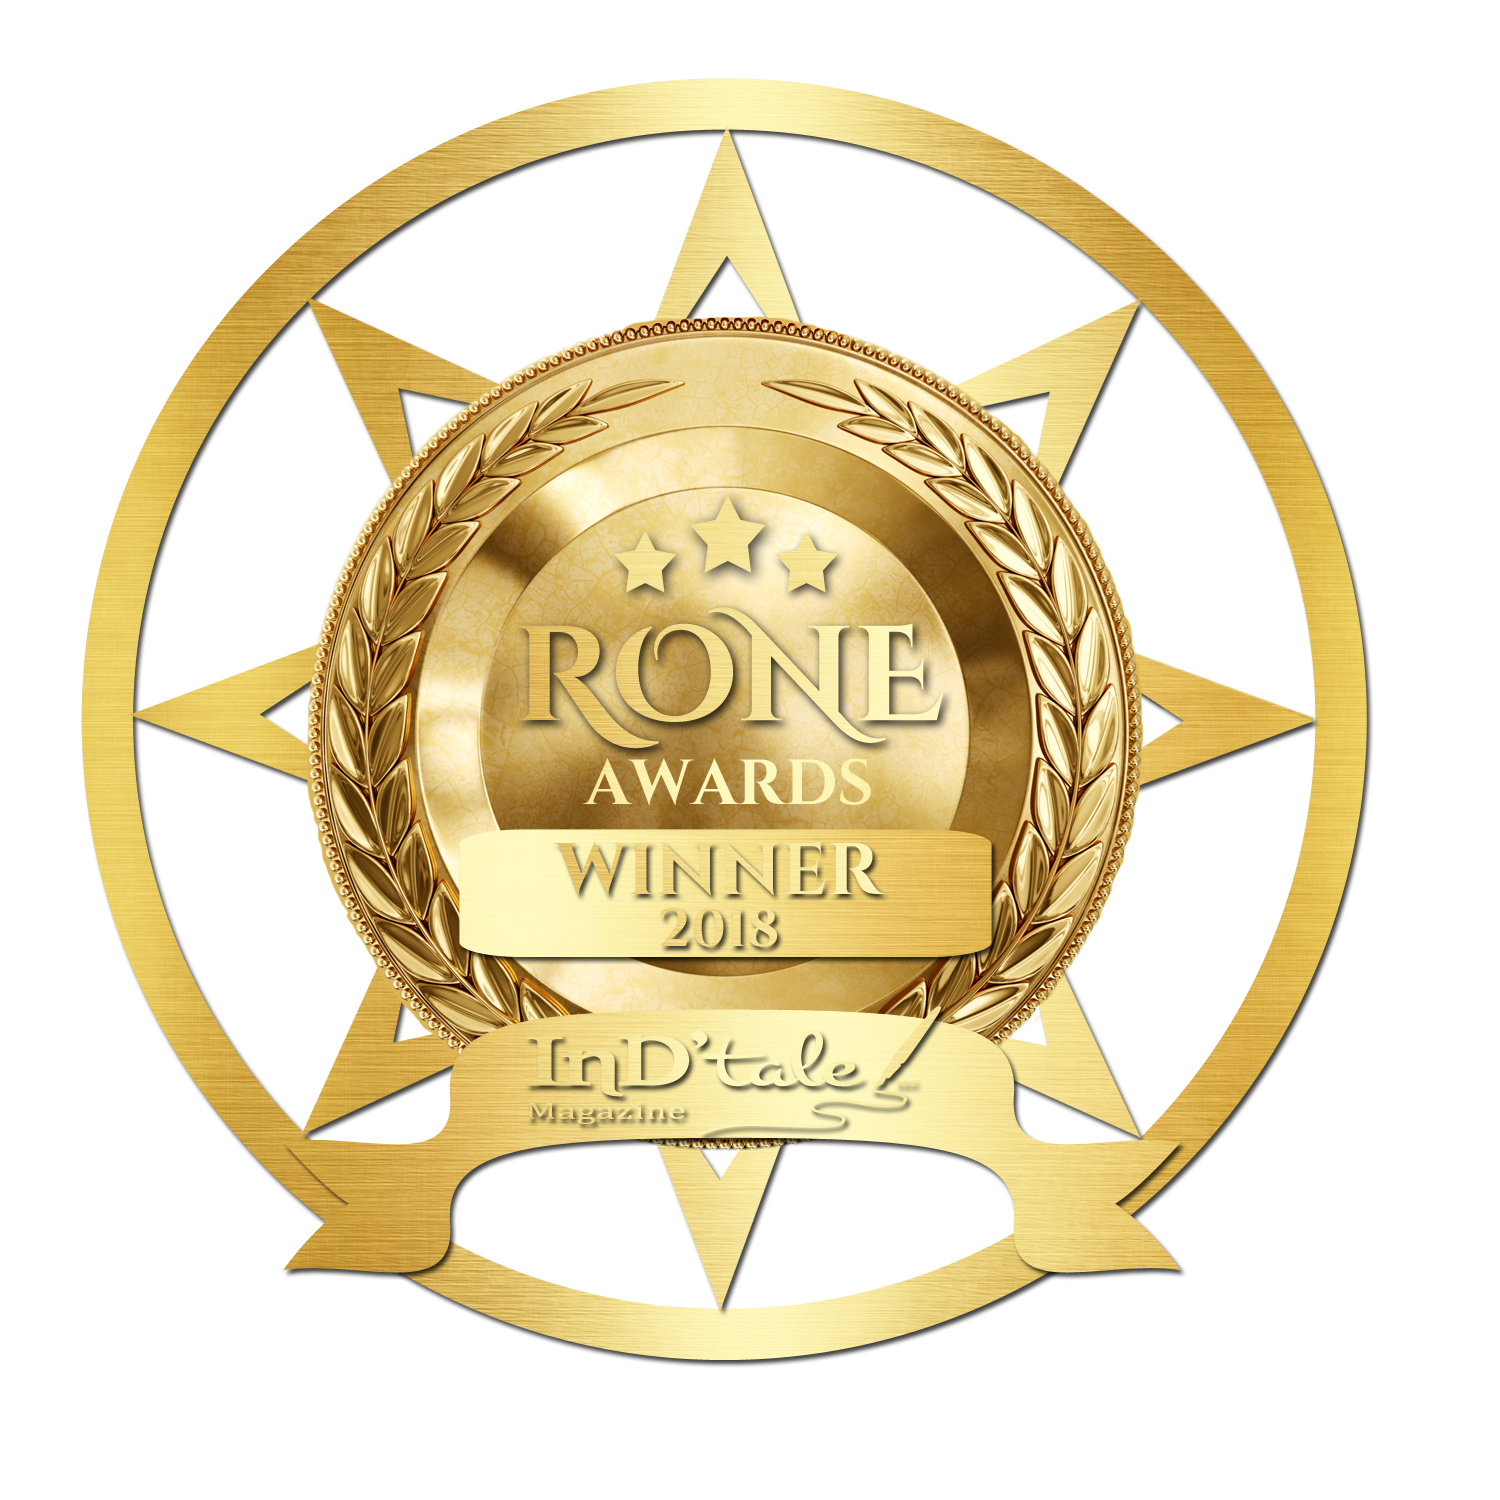 Rone-Badge-Winner-2018